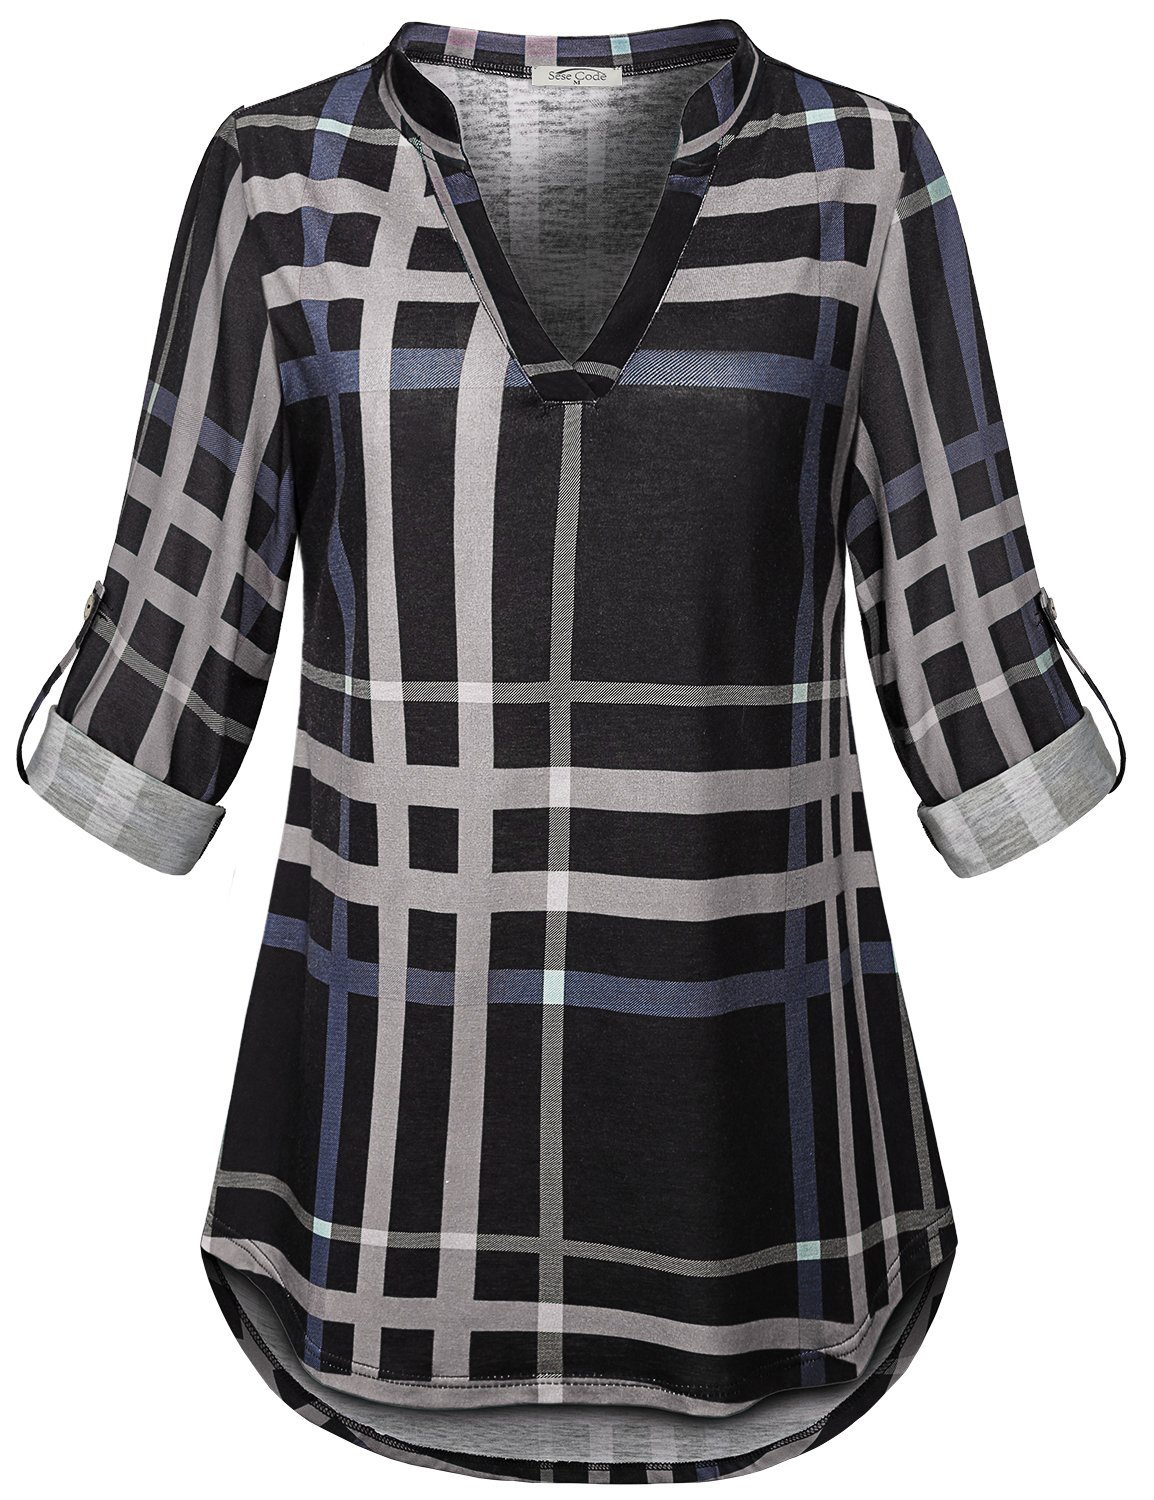 SeSe Code Tartan Shirts Women Ladies Henley Checkered Loose Fitted Blouse Retro Mandarin Collared Different Jerseys Swing Latest Fashion 3/4 Sleeve Tunic Top Gray and Black XL